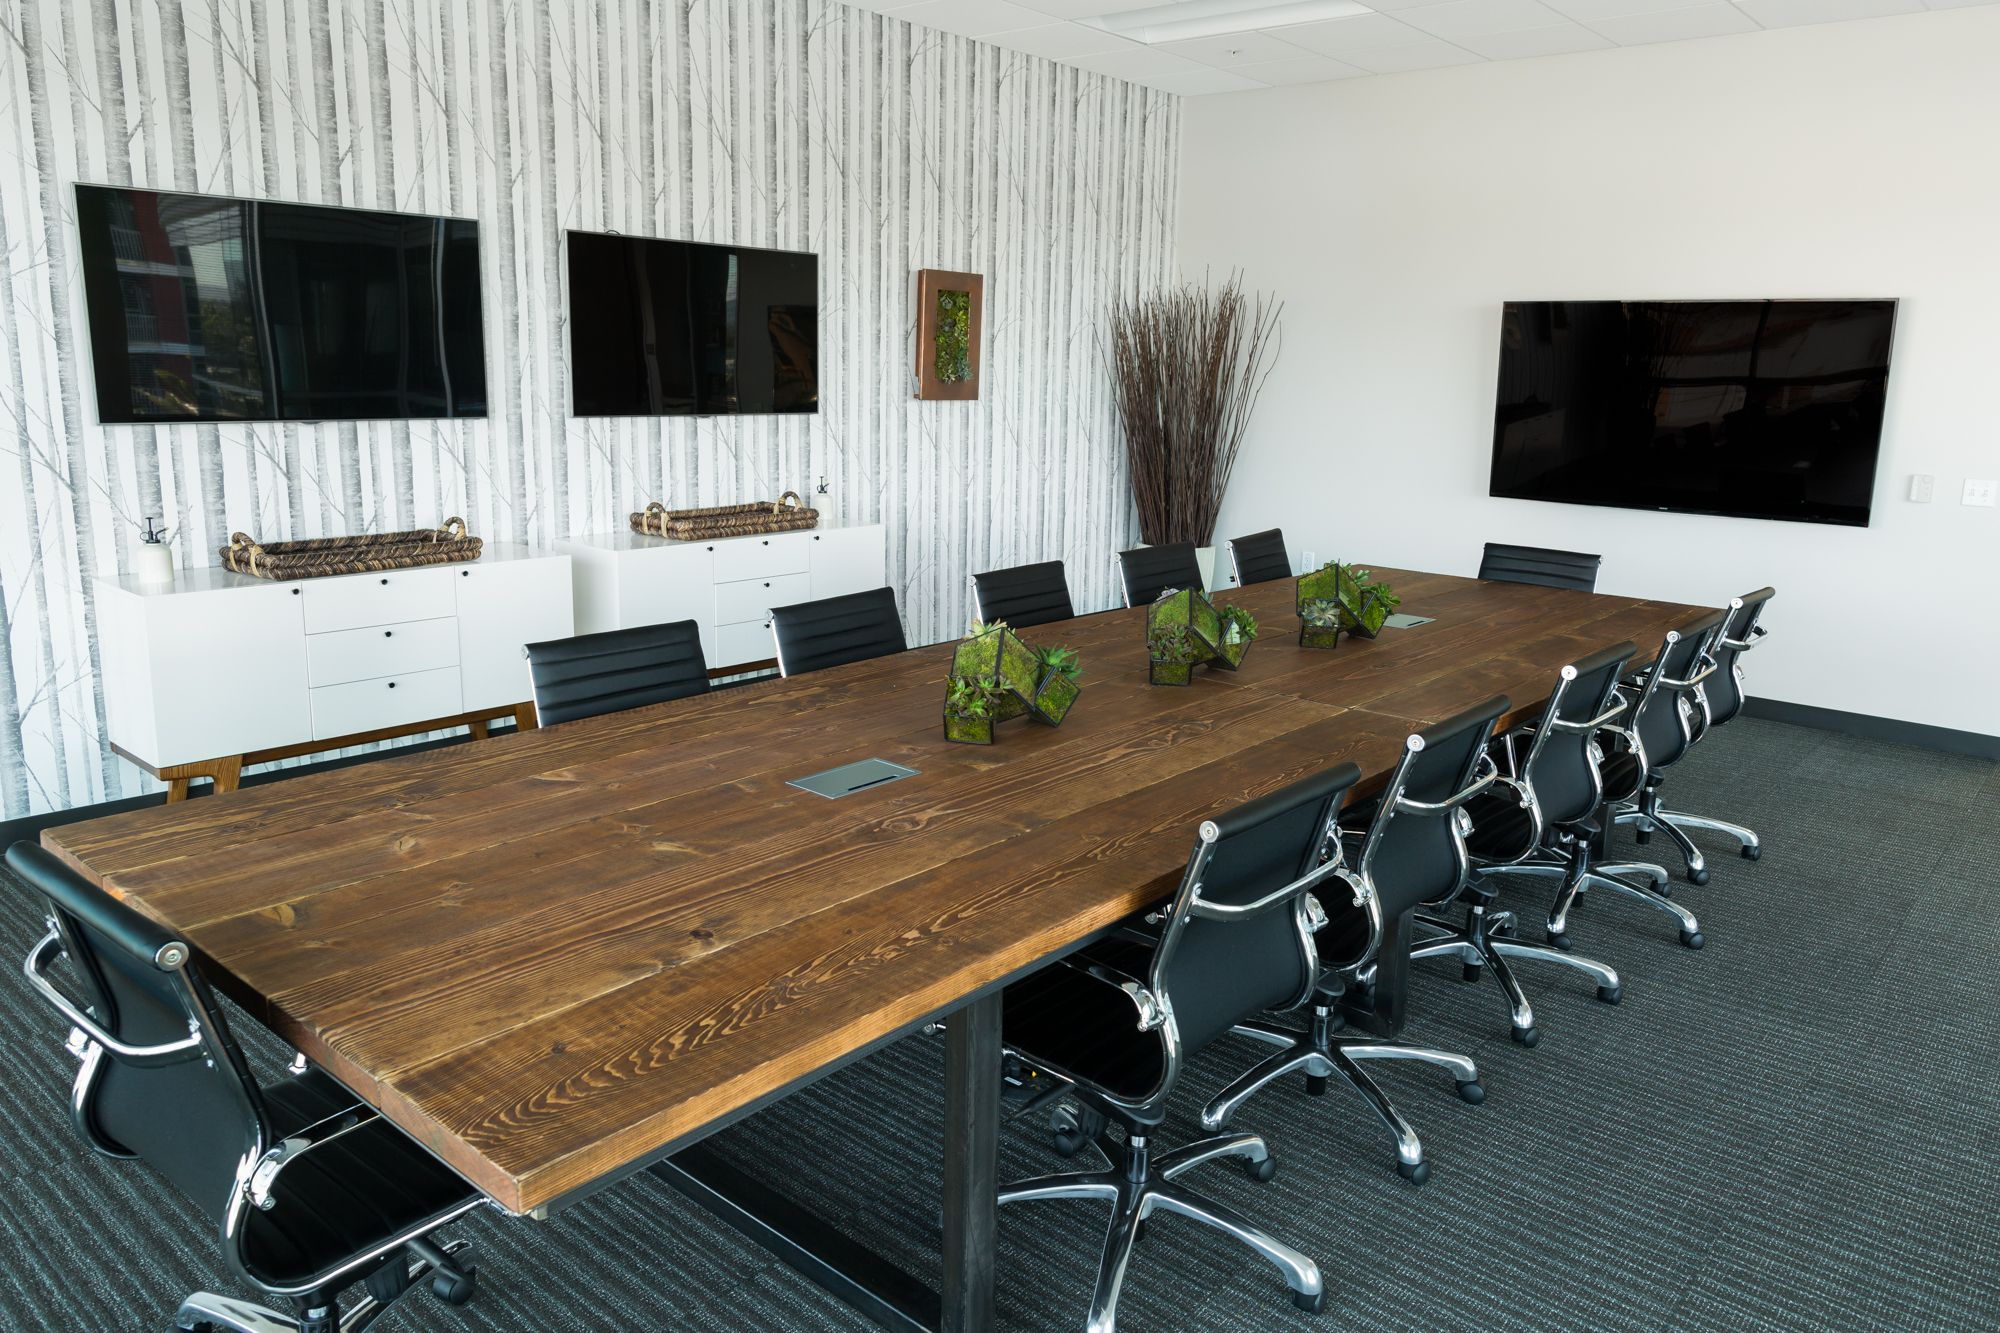 Meeting Room Tables Conference Room Industrial Table And Chairs I Like Decorating